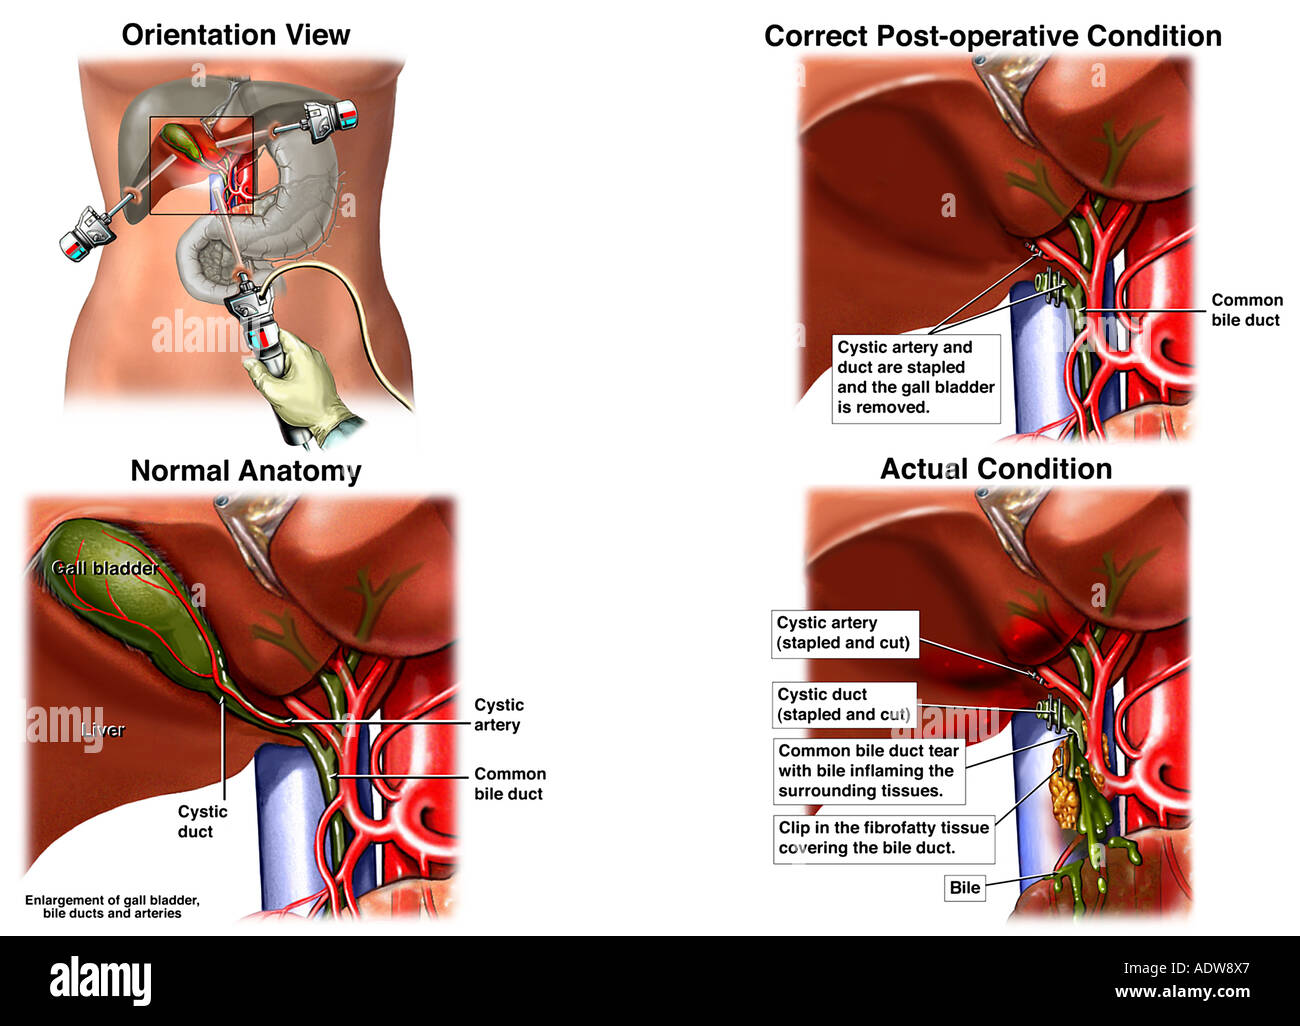 Laparascopic Cholecystectomy Gallbladder Removal Surgery With Stock